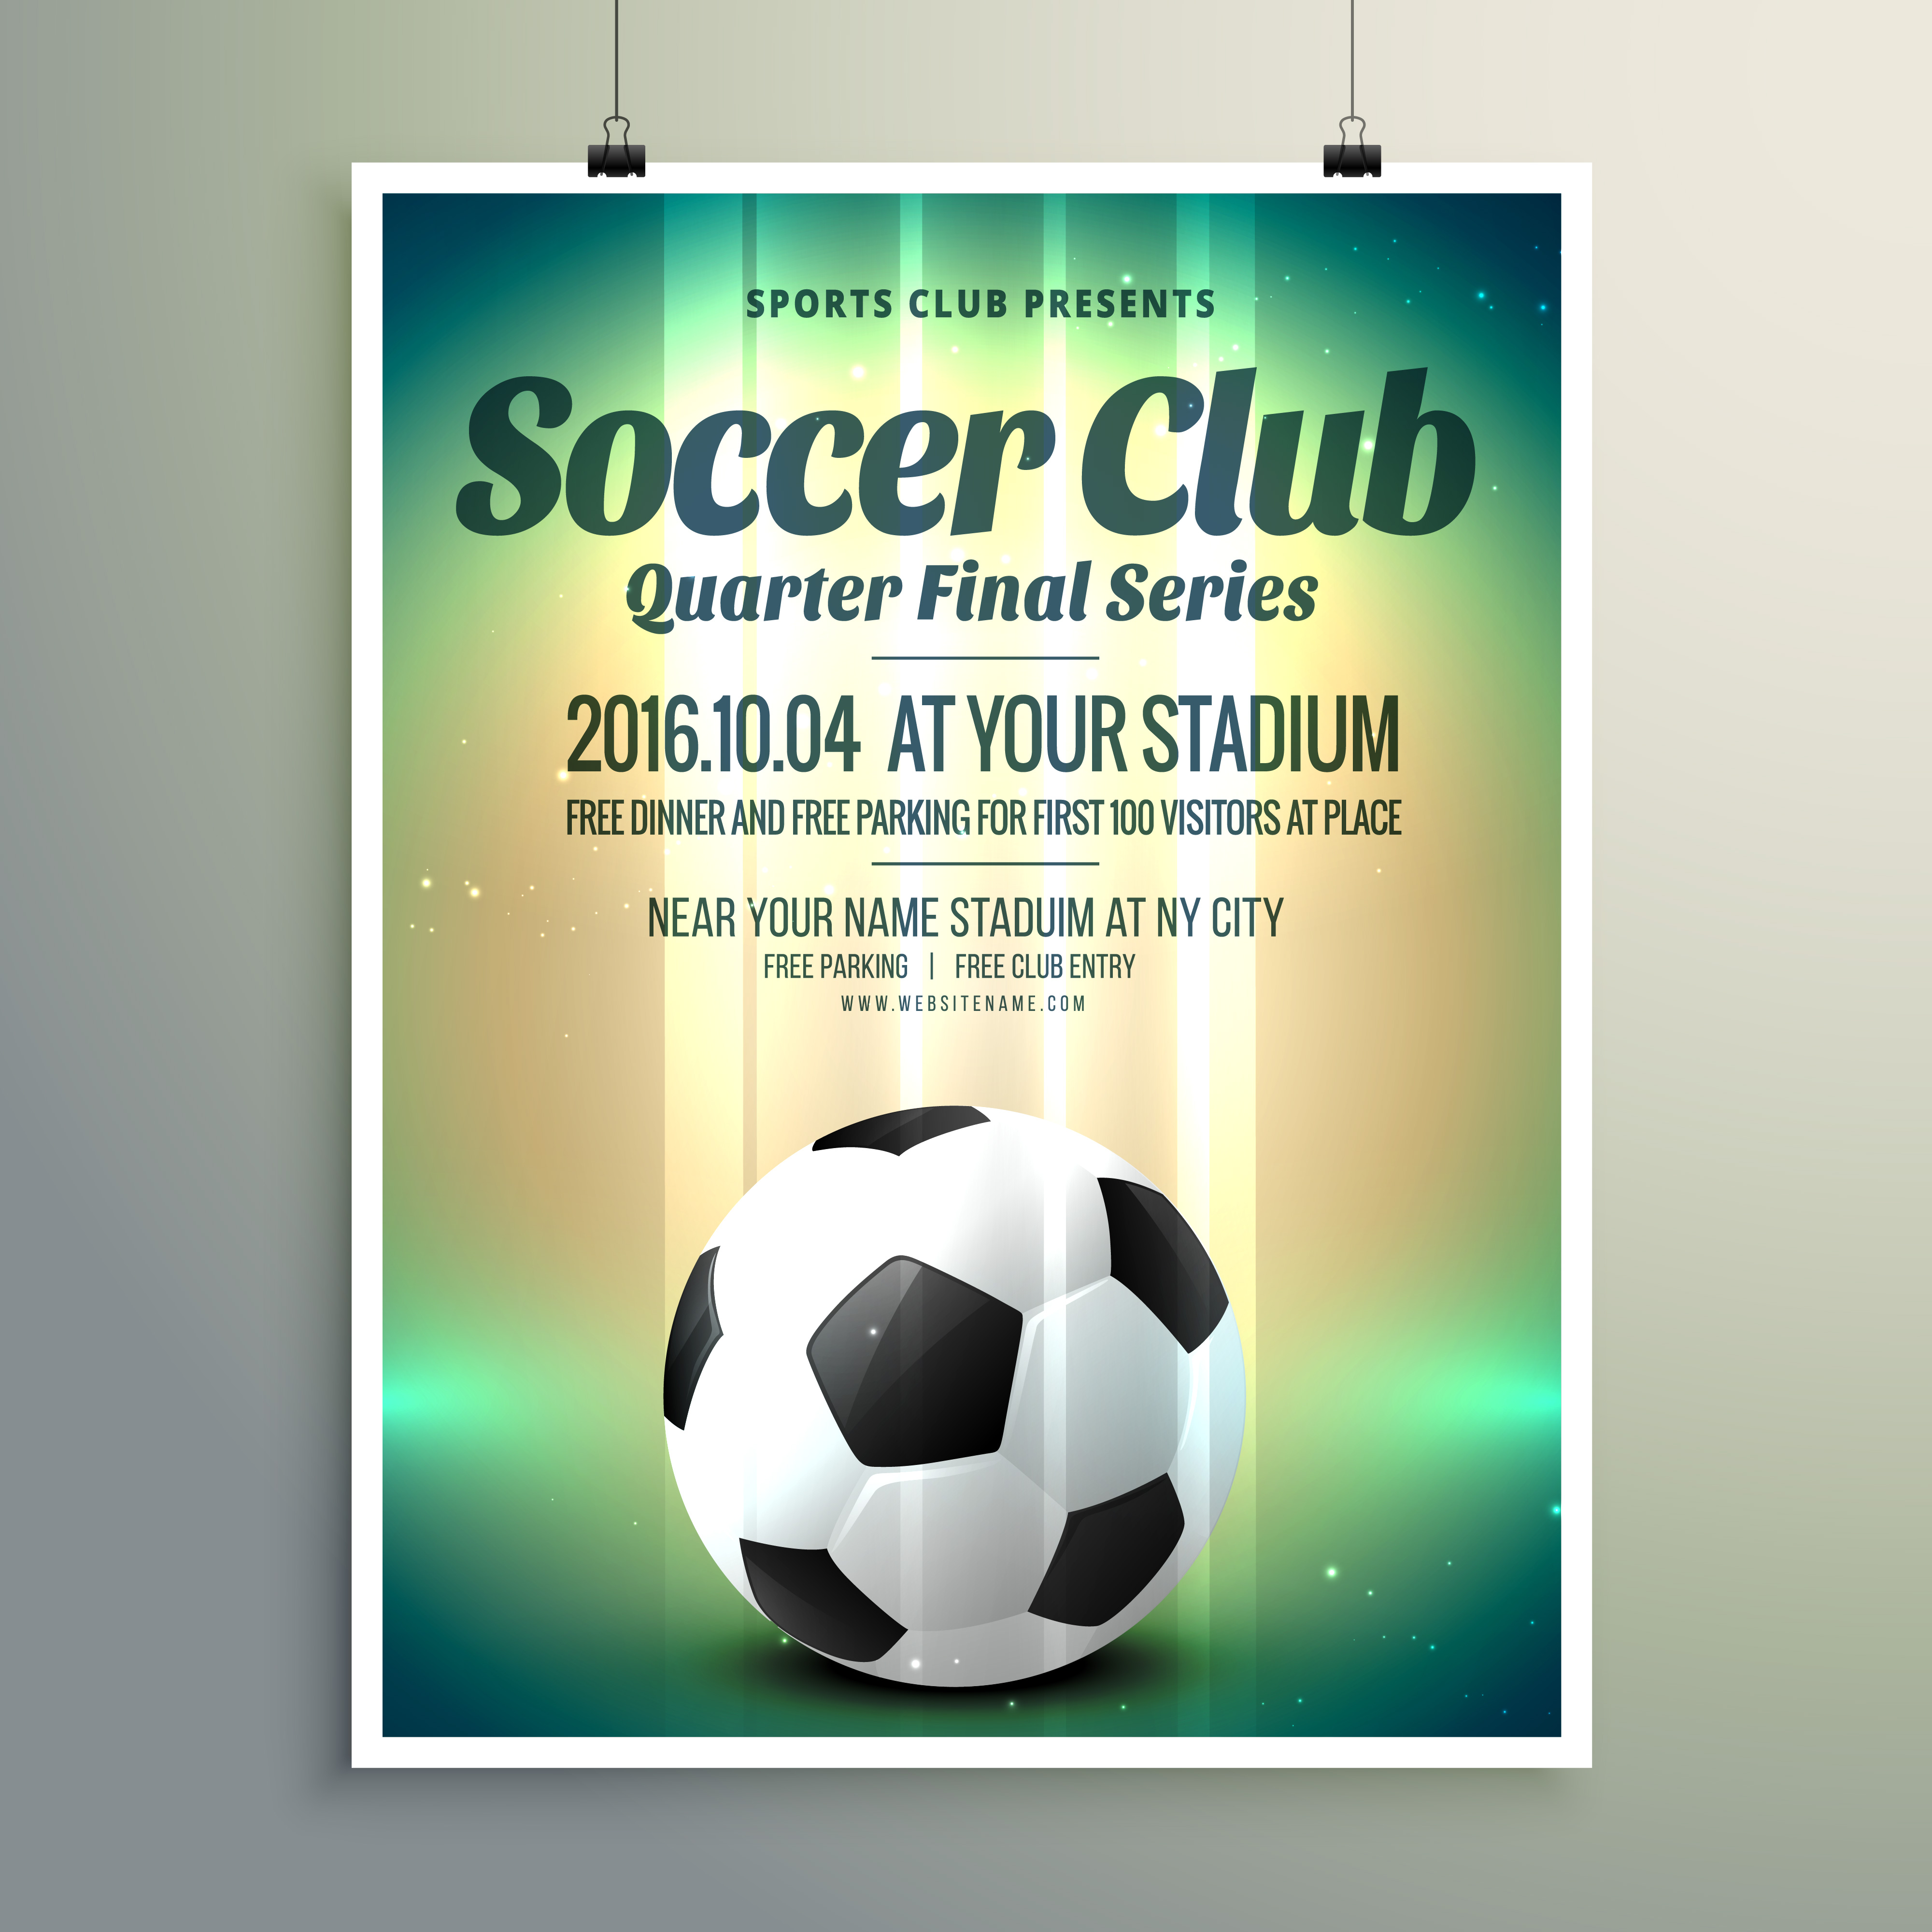 Soccer Cup Final Series Flyer Template - Download Free Vector Art, Stock  Graphics & Images